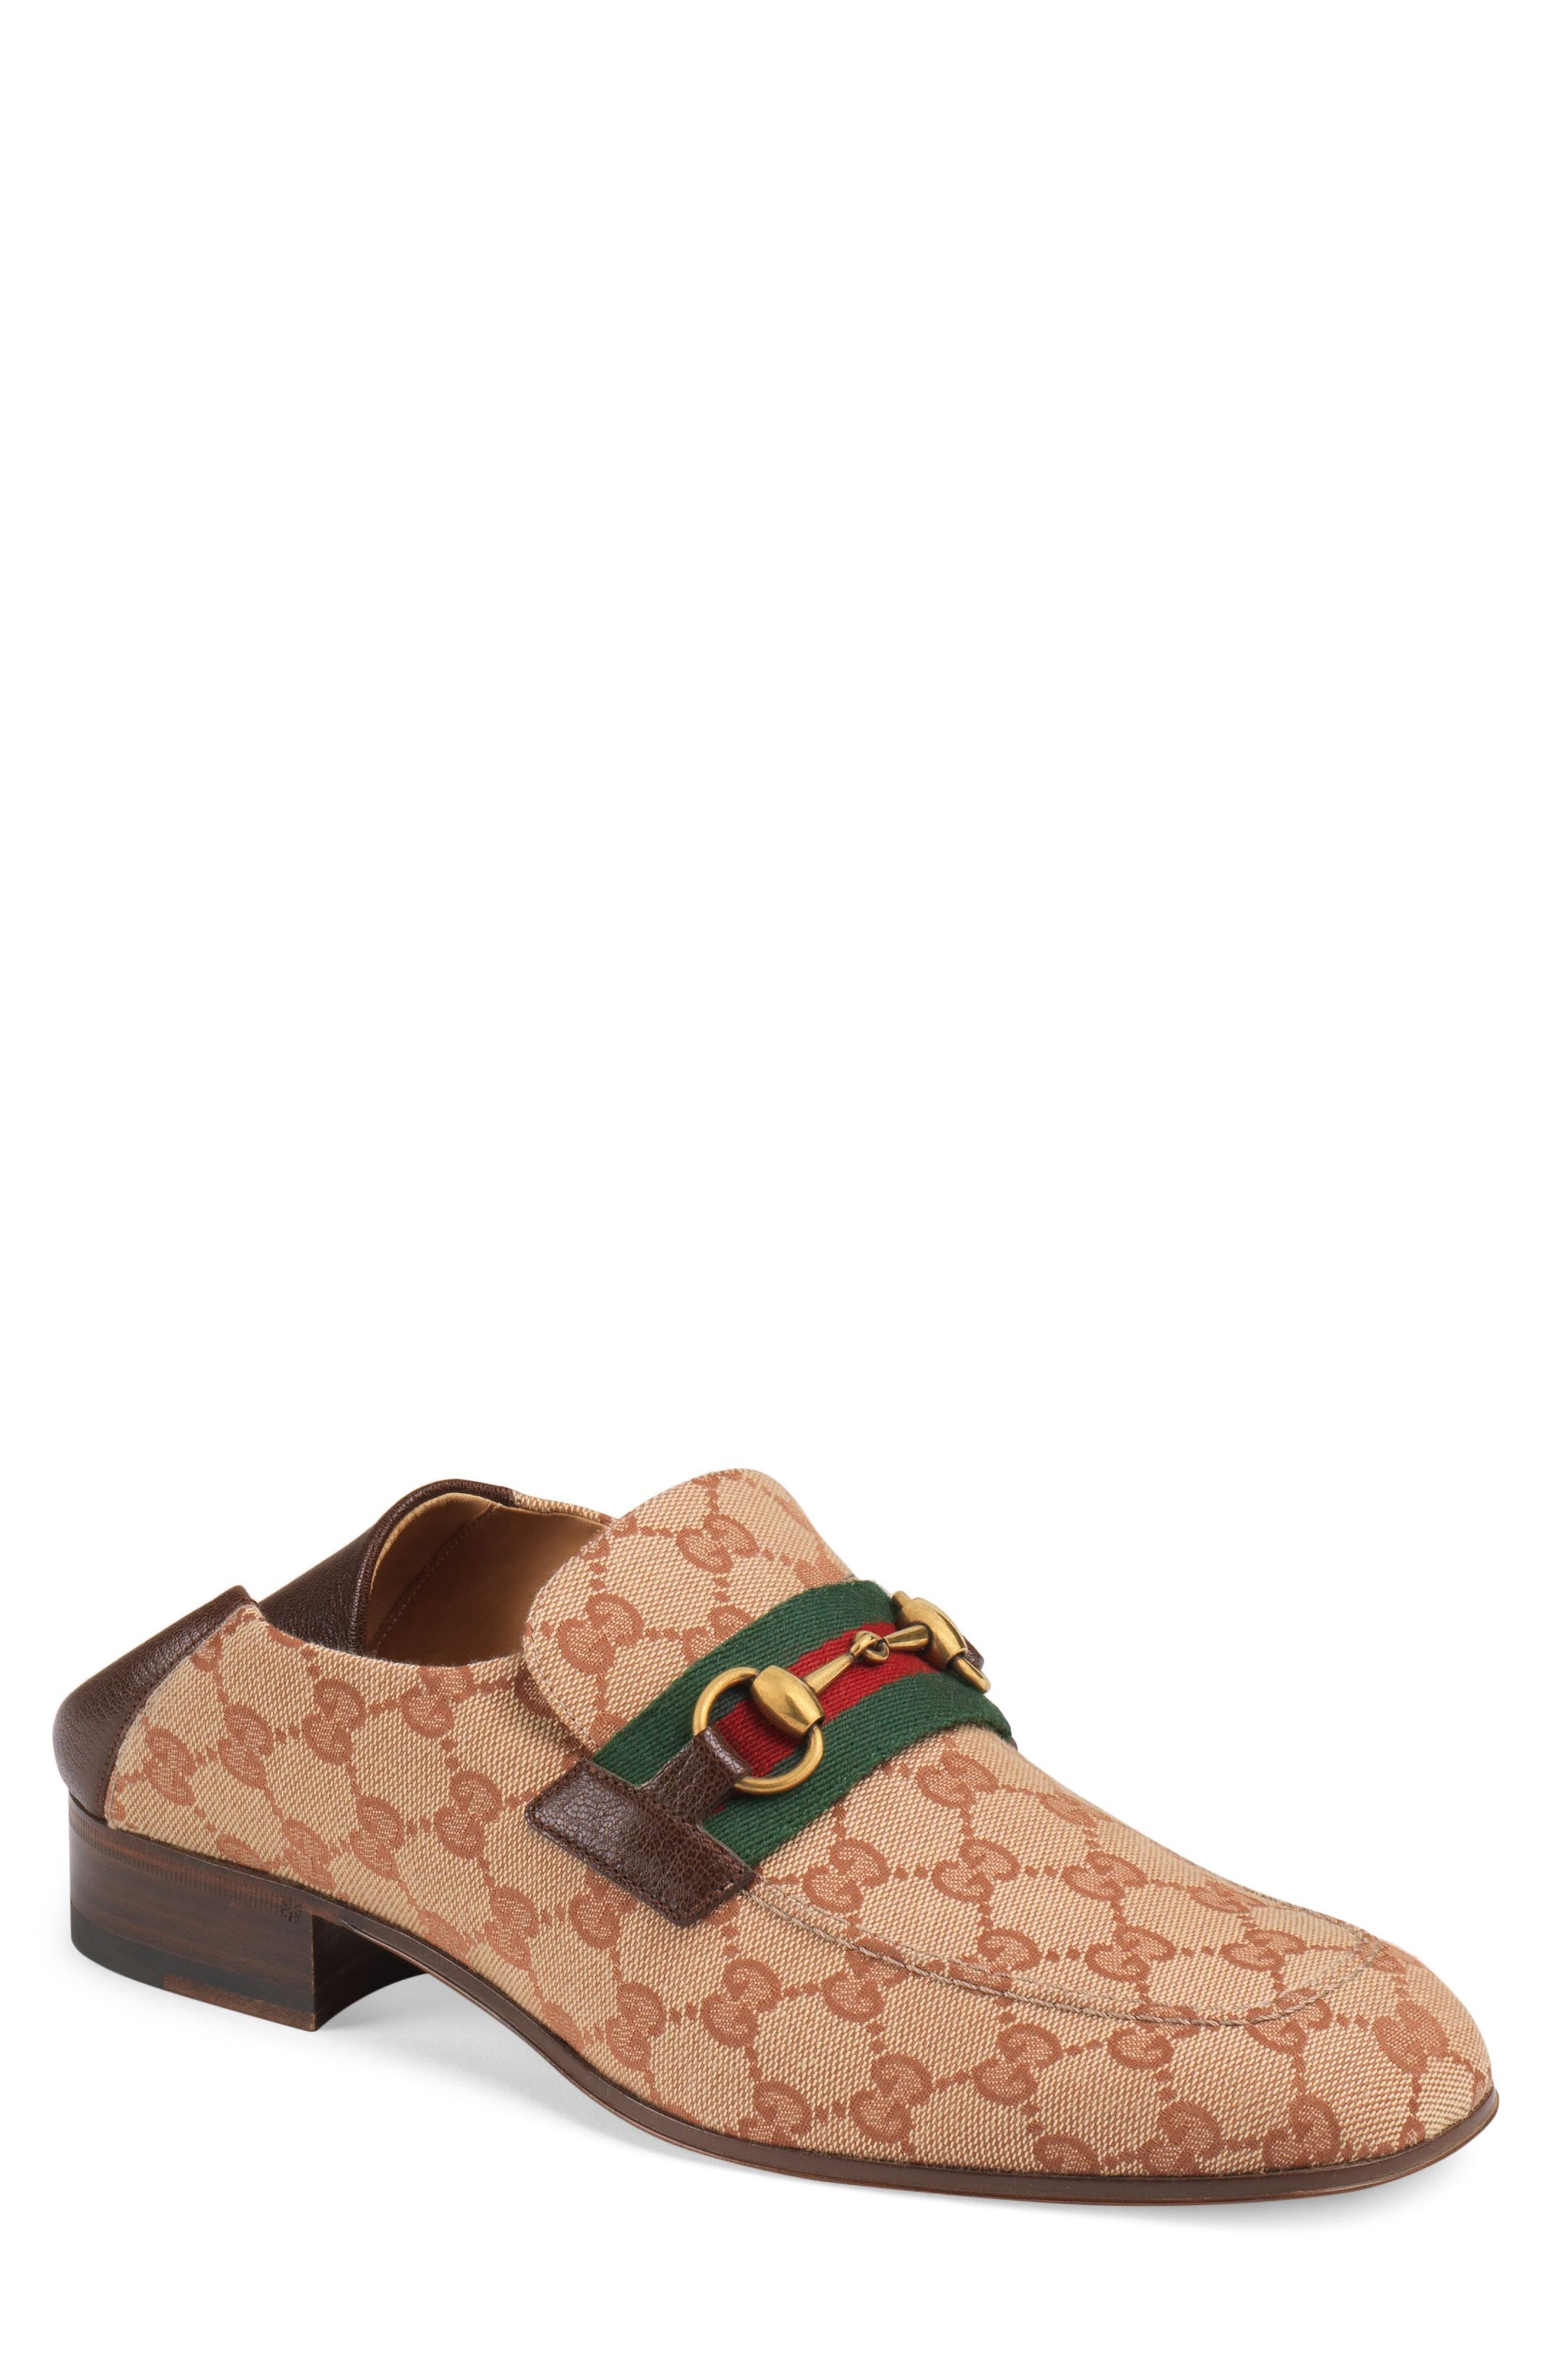 GUCCI Horsebit Collapsible Leather Loafer, Main, color, BEIGE/ ROSE